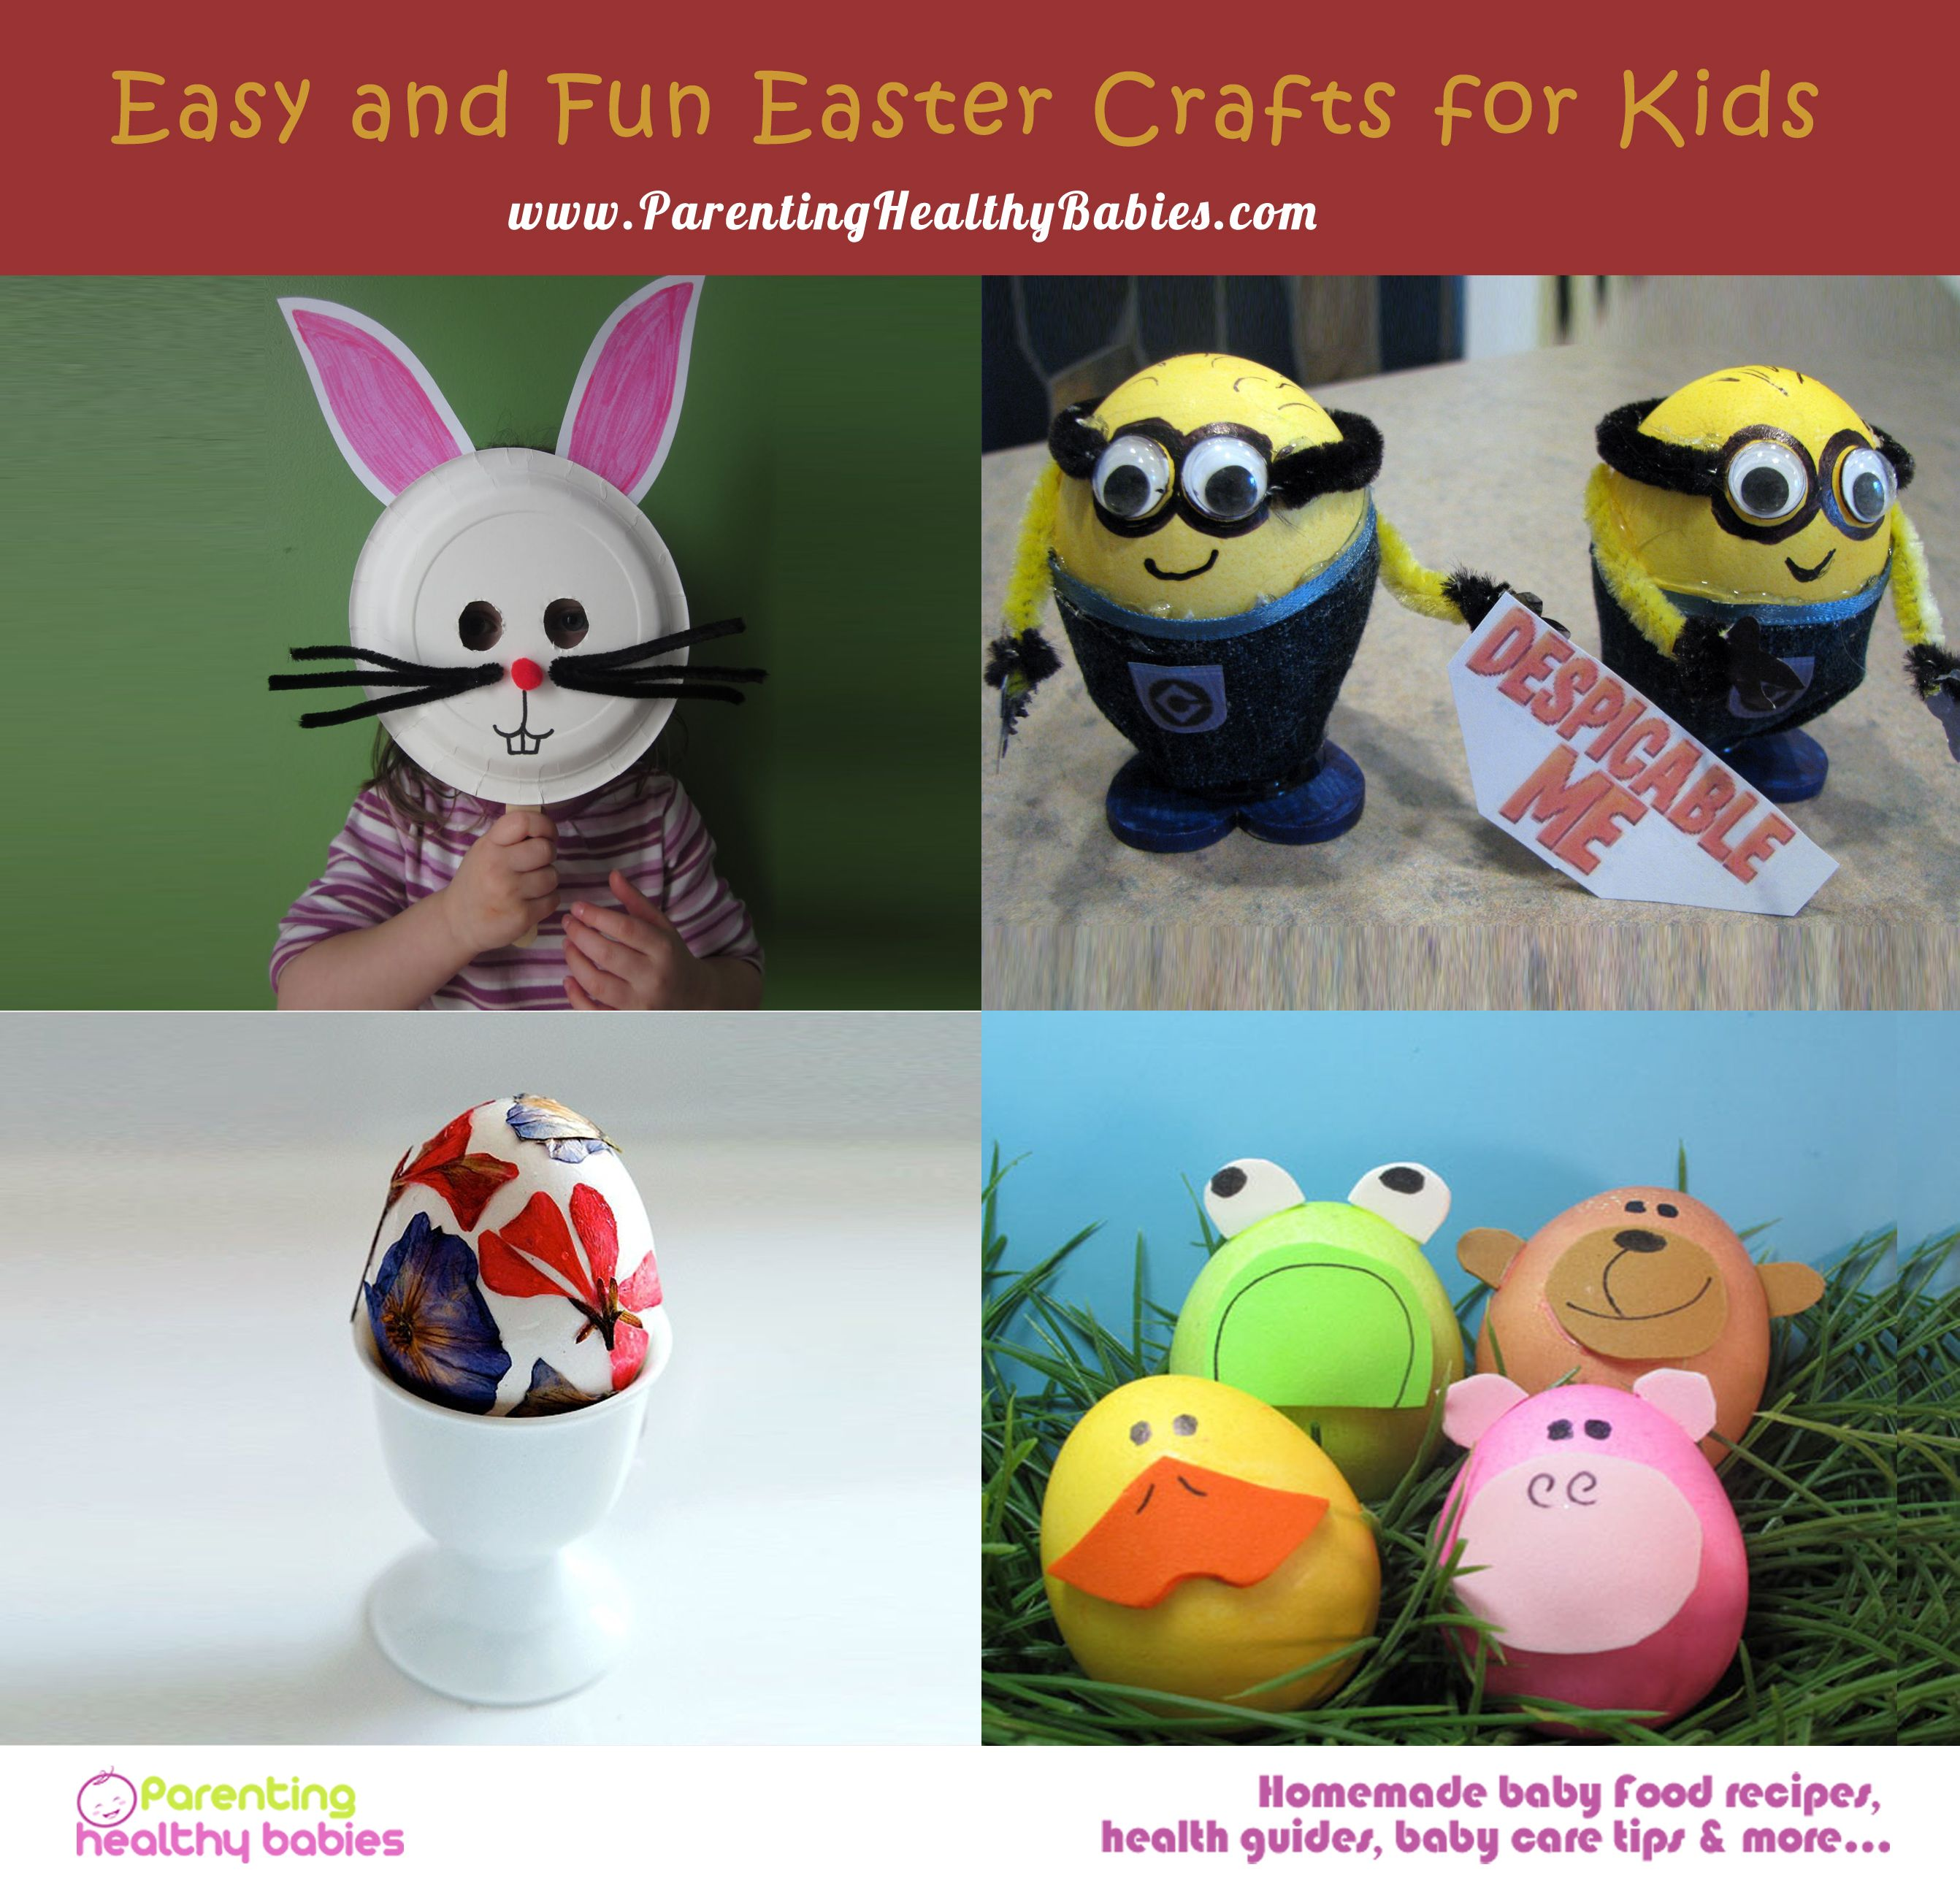 Minion easter eggs httpparentinghealthybabies20 do it minion easter eggs httpparentinghealthybabies20 do it solutioingenieria Choice Image